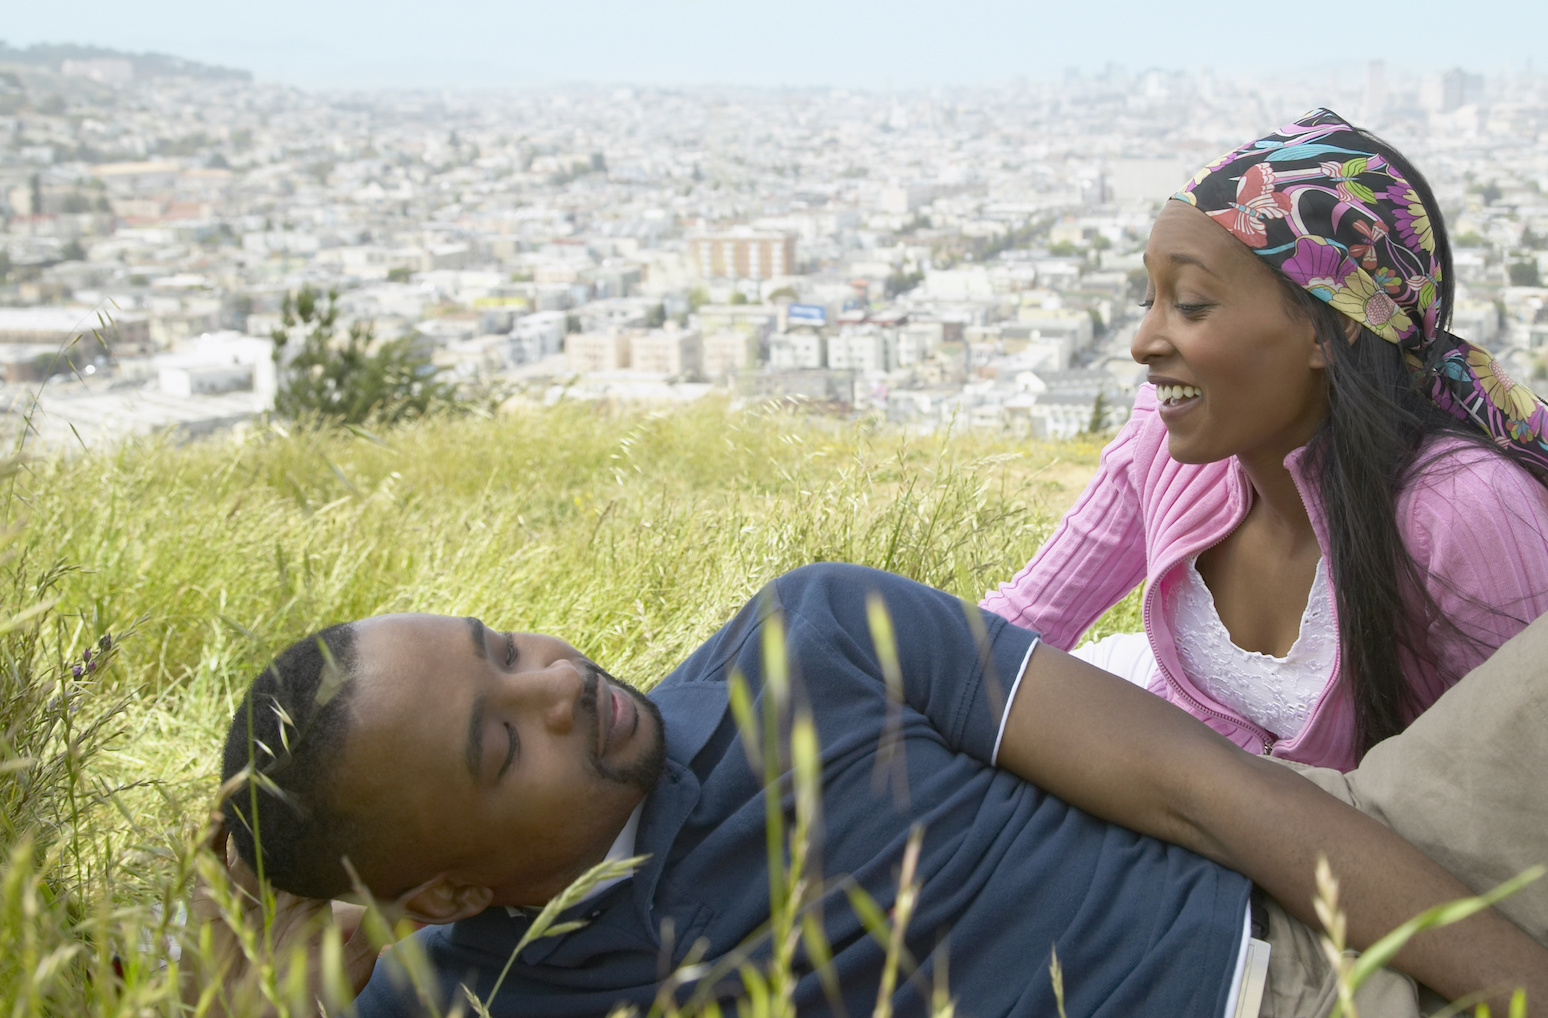 pic of African couple sitting in grass on hill above city